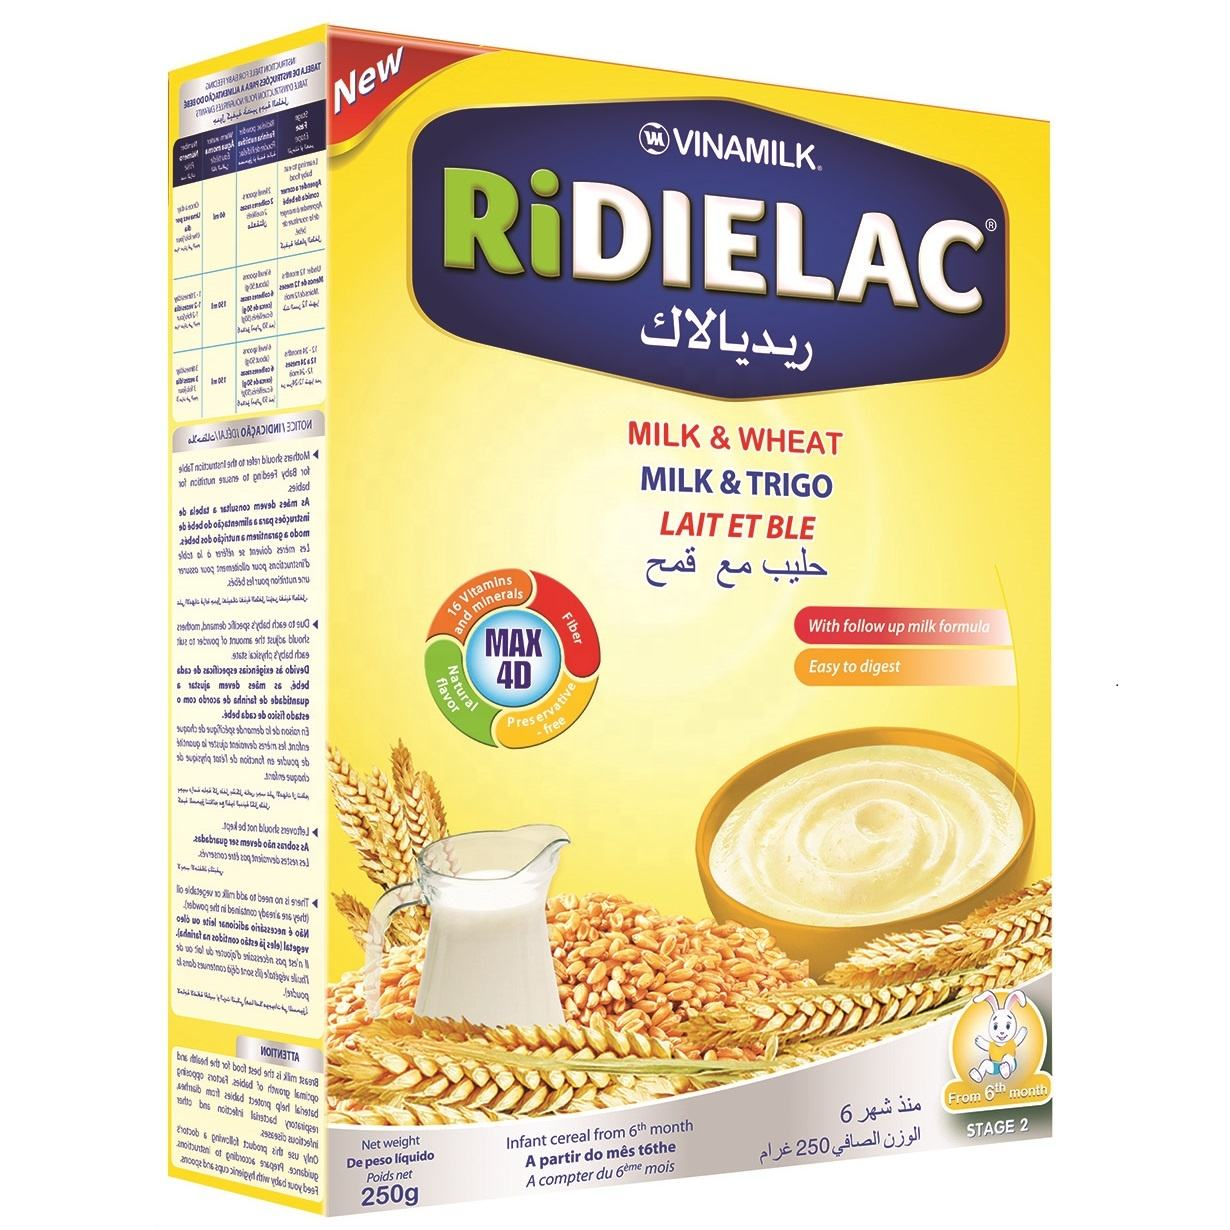 RIDIELAC Infant Cereal Milk Wheat - VINAMILK